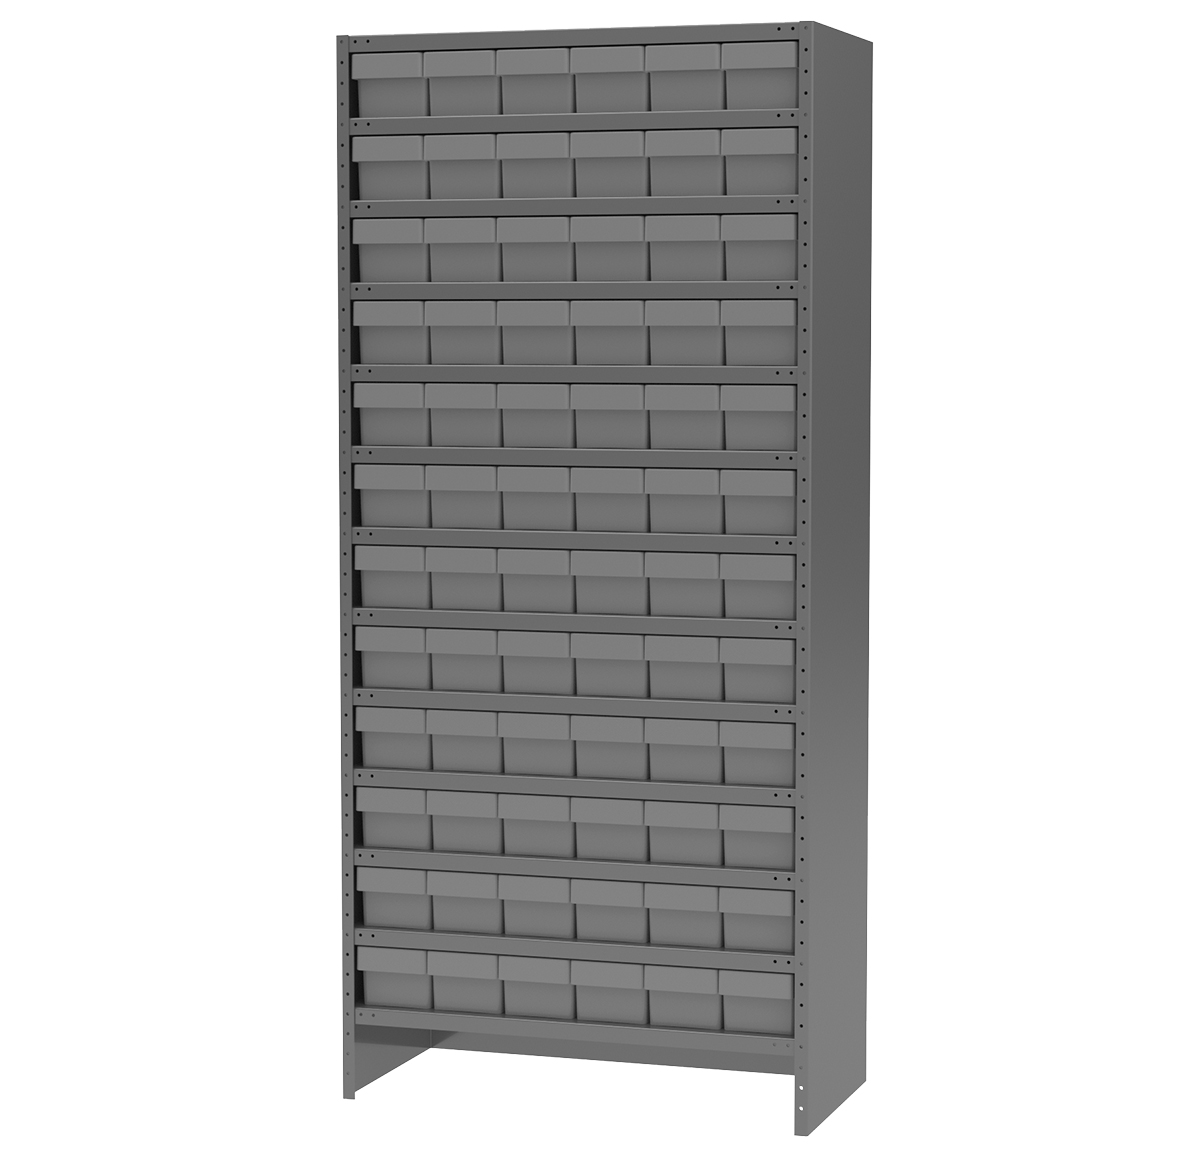 Enclosed Steel Shelving Kit, 18x36x79, 72 AkroDrawers, Gray/Gray.  This item sold in carton quantities of 1.